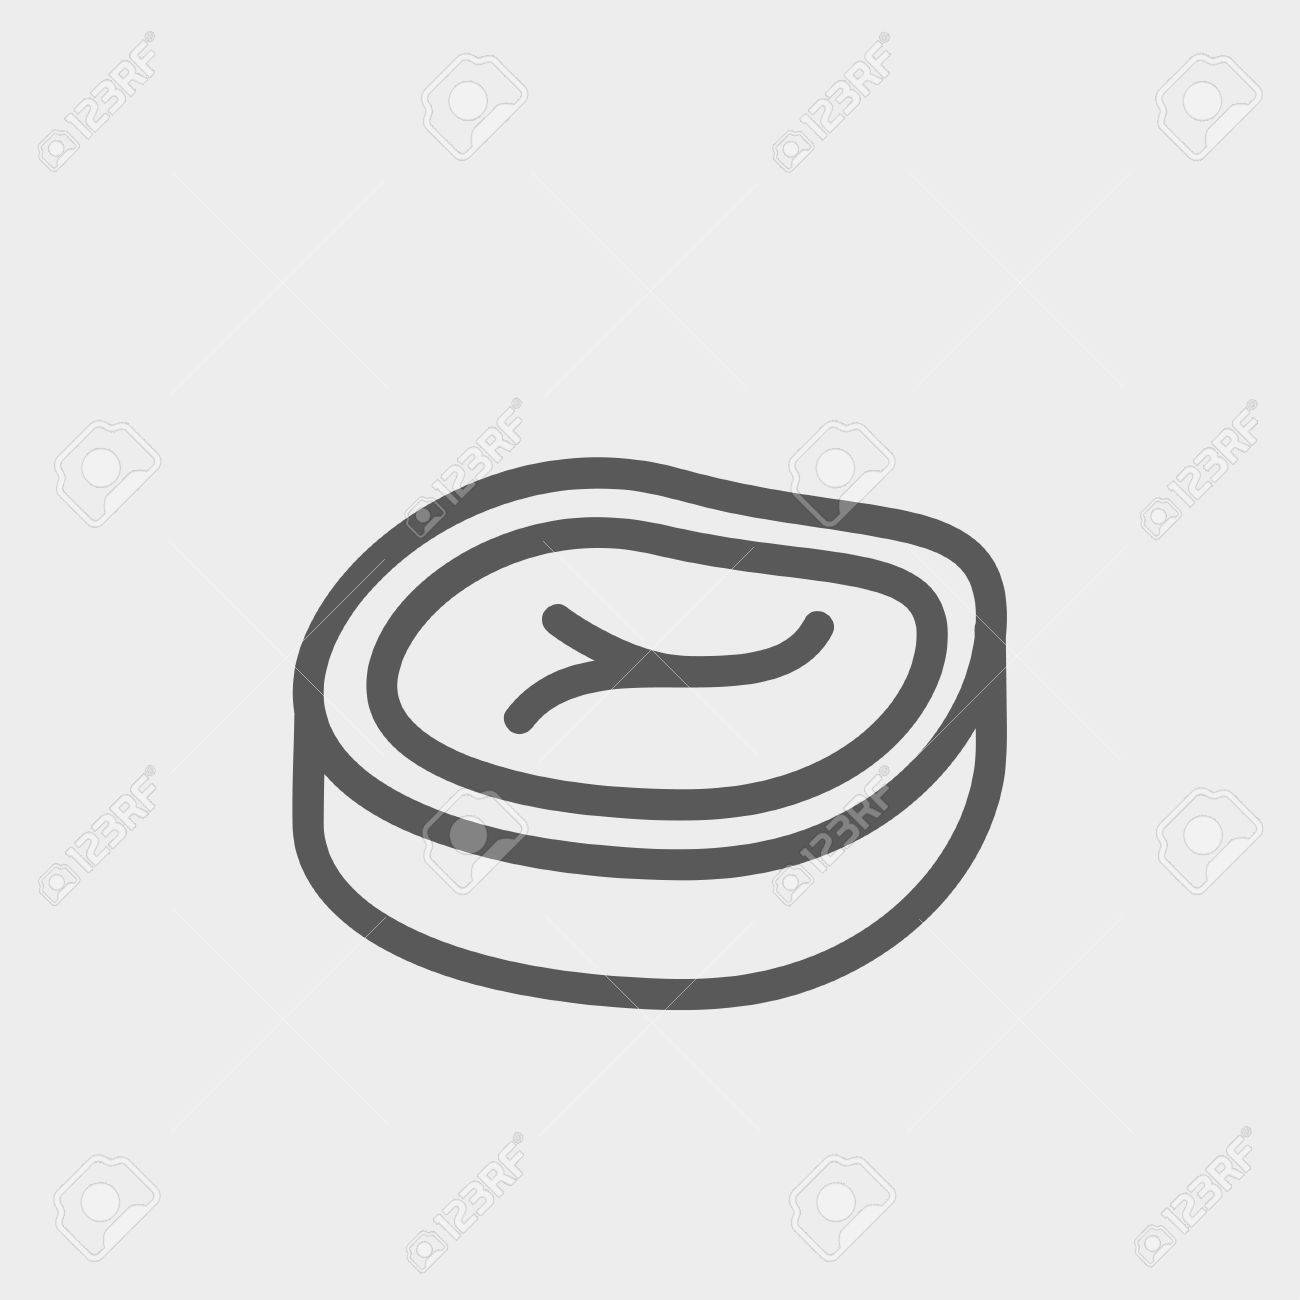 Sliced Pork Meat Icon Thin Line For Web And Mobile Modern Minimalistic Flat Design